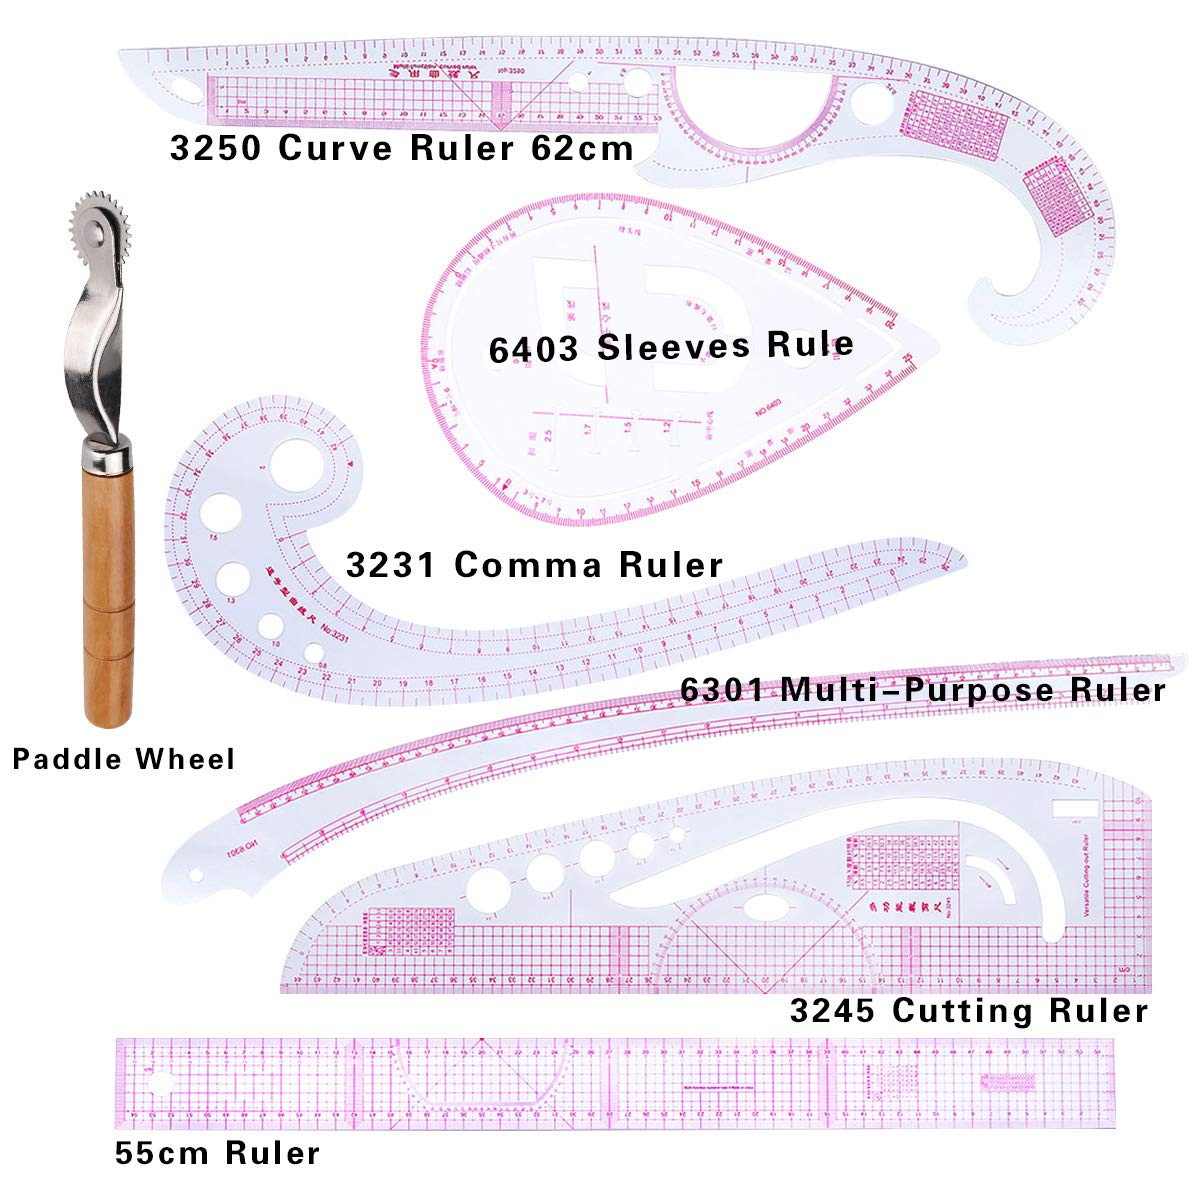 perfektchoice 5Pcs DIY Styling Ruler Sets Plastic Metric Ruler Set French Curve Rulers Cutting Ruler Sew Drawing Template Sewing Tools for Dressmaking Tailoring